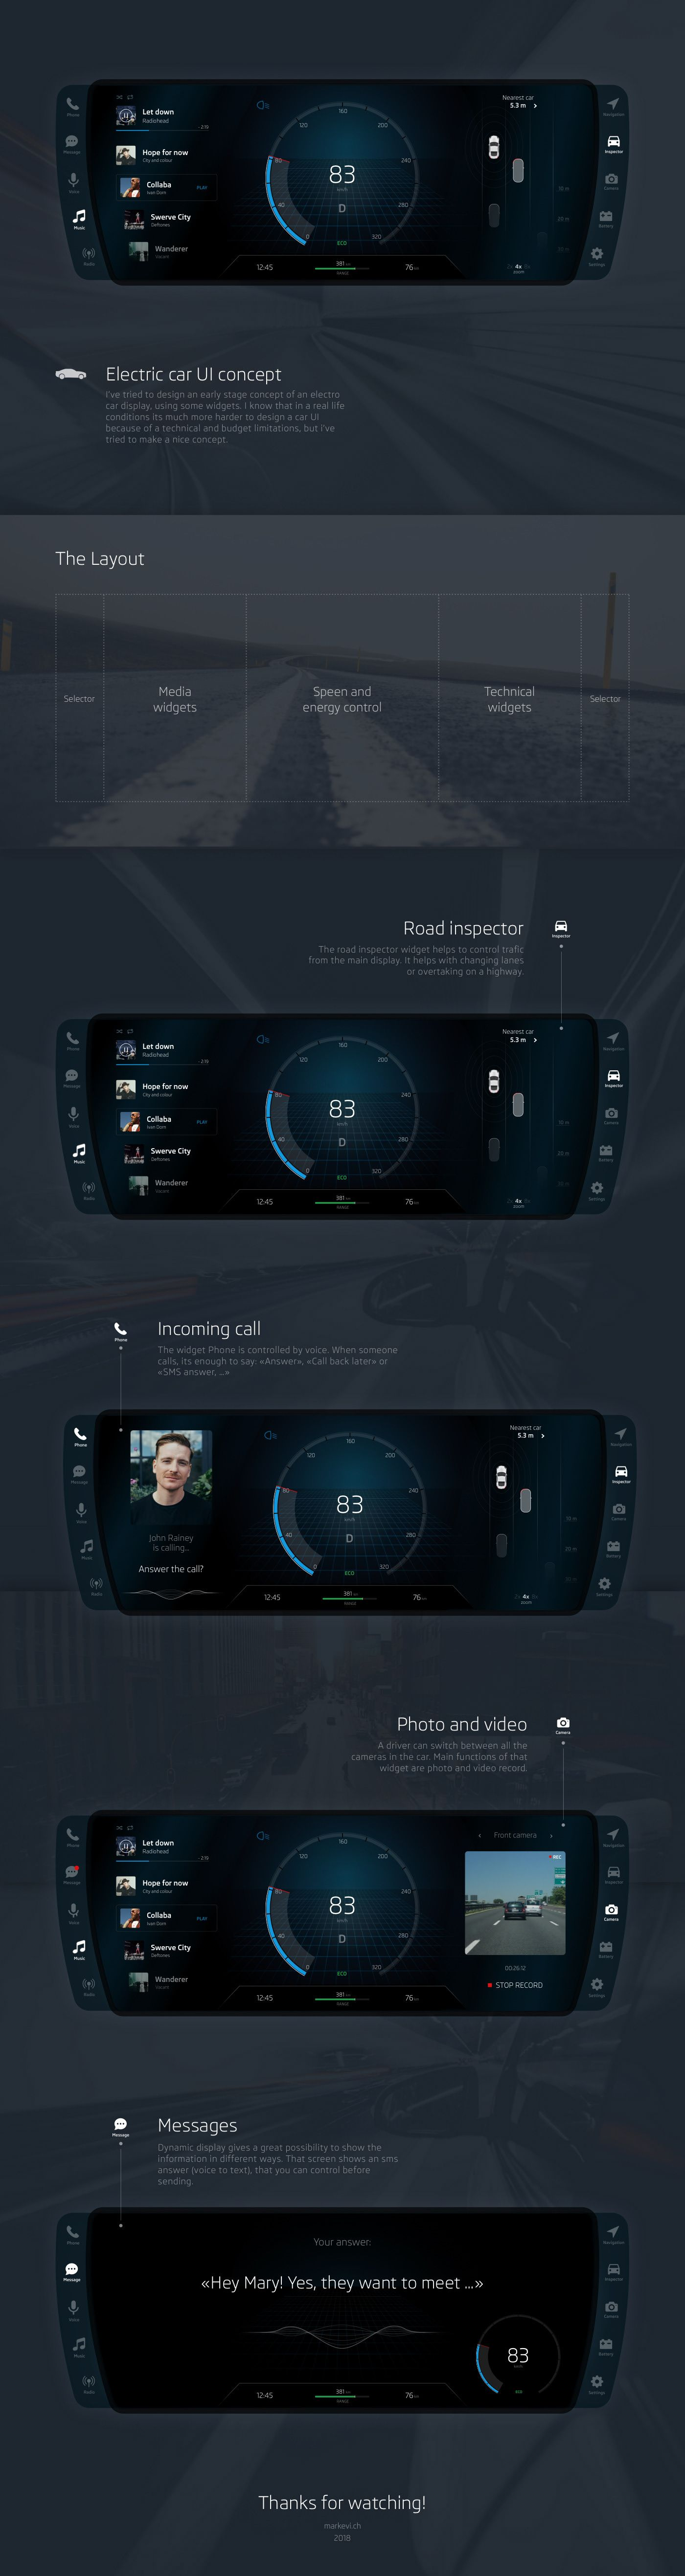 Electric Car UI concept